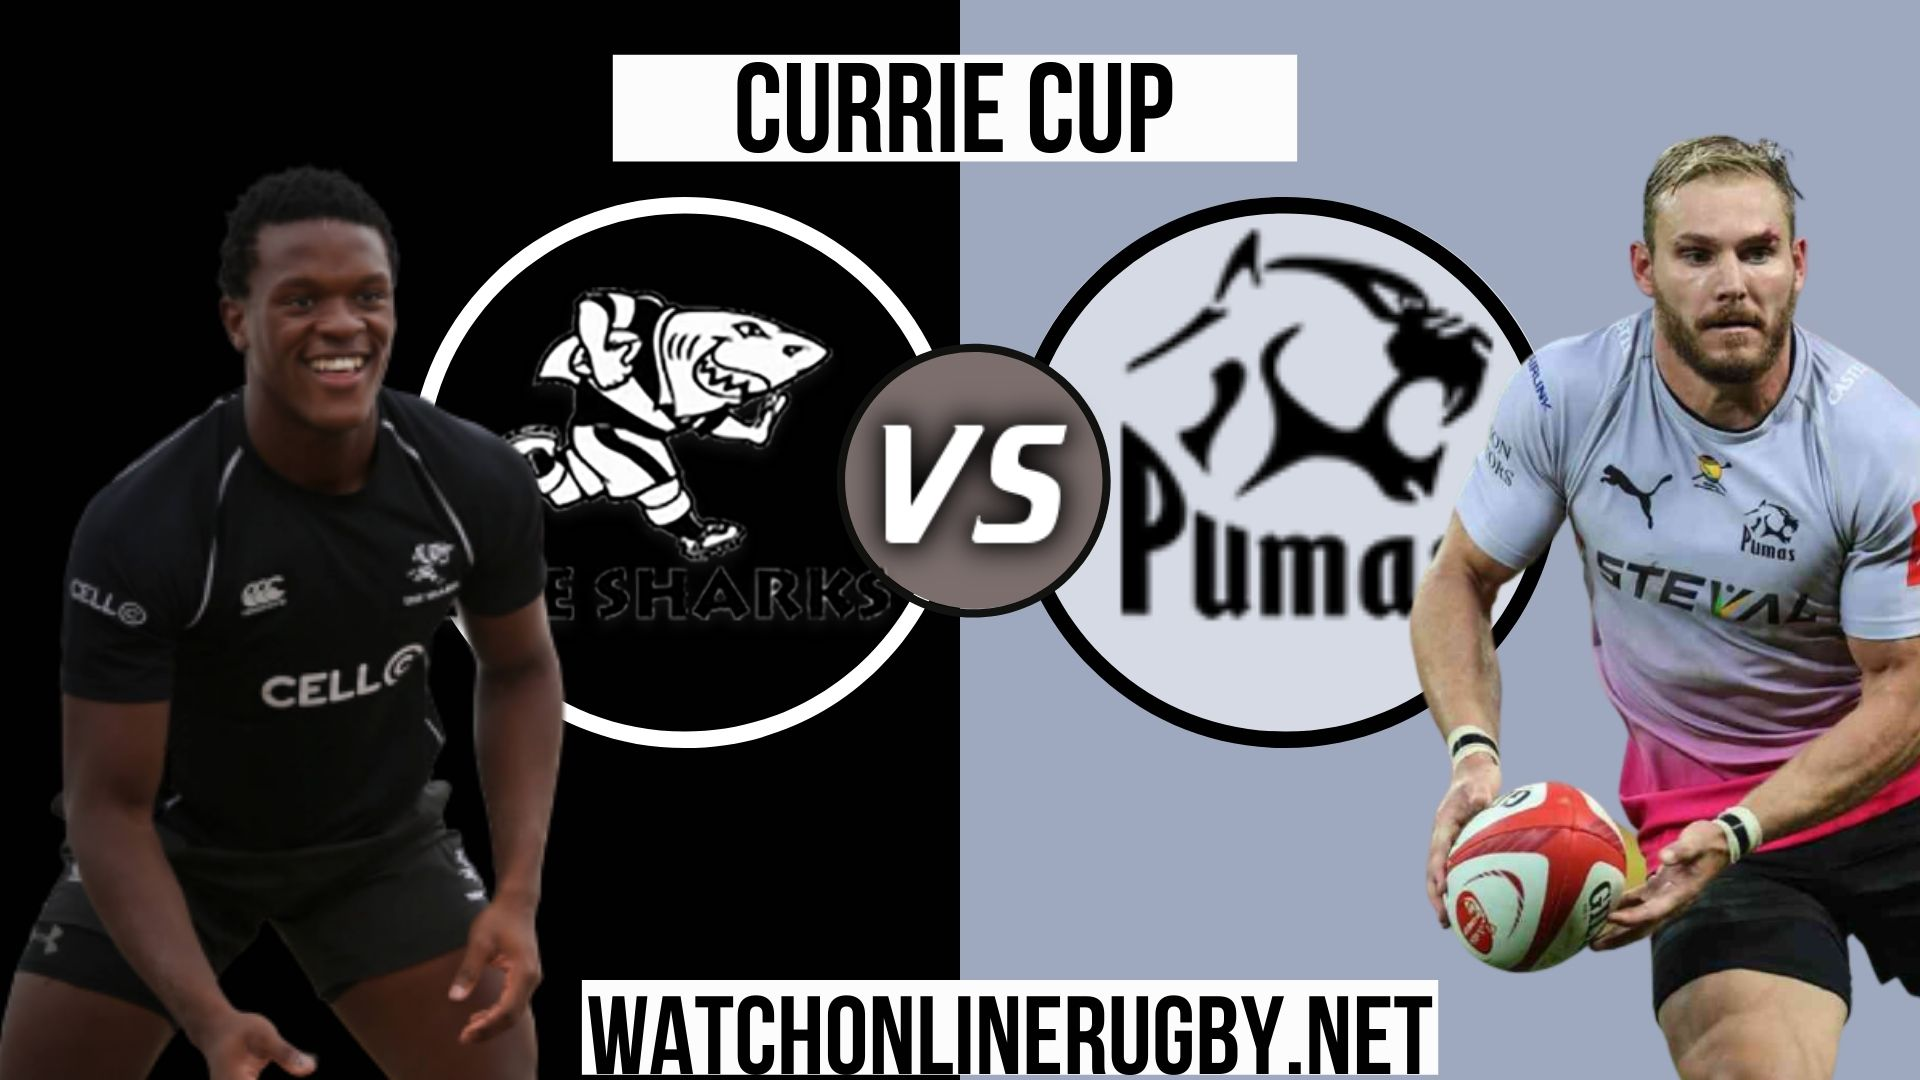 Sharks vs pumas Currie Cup 2020